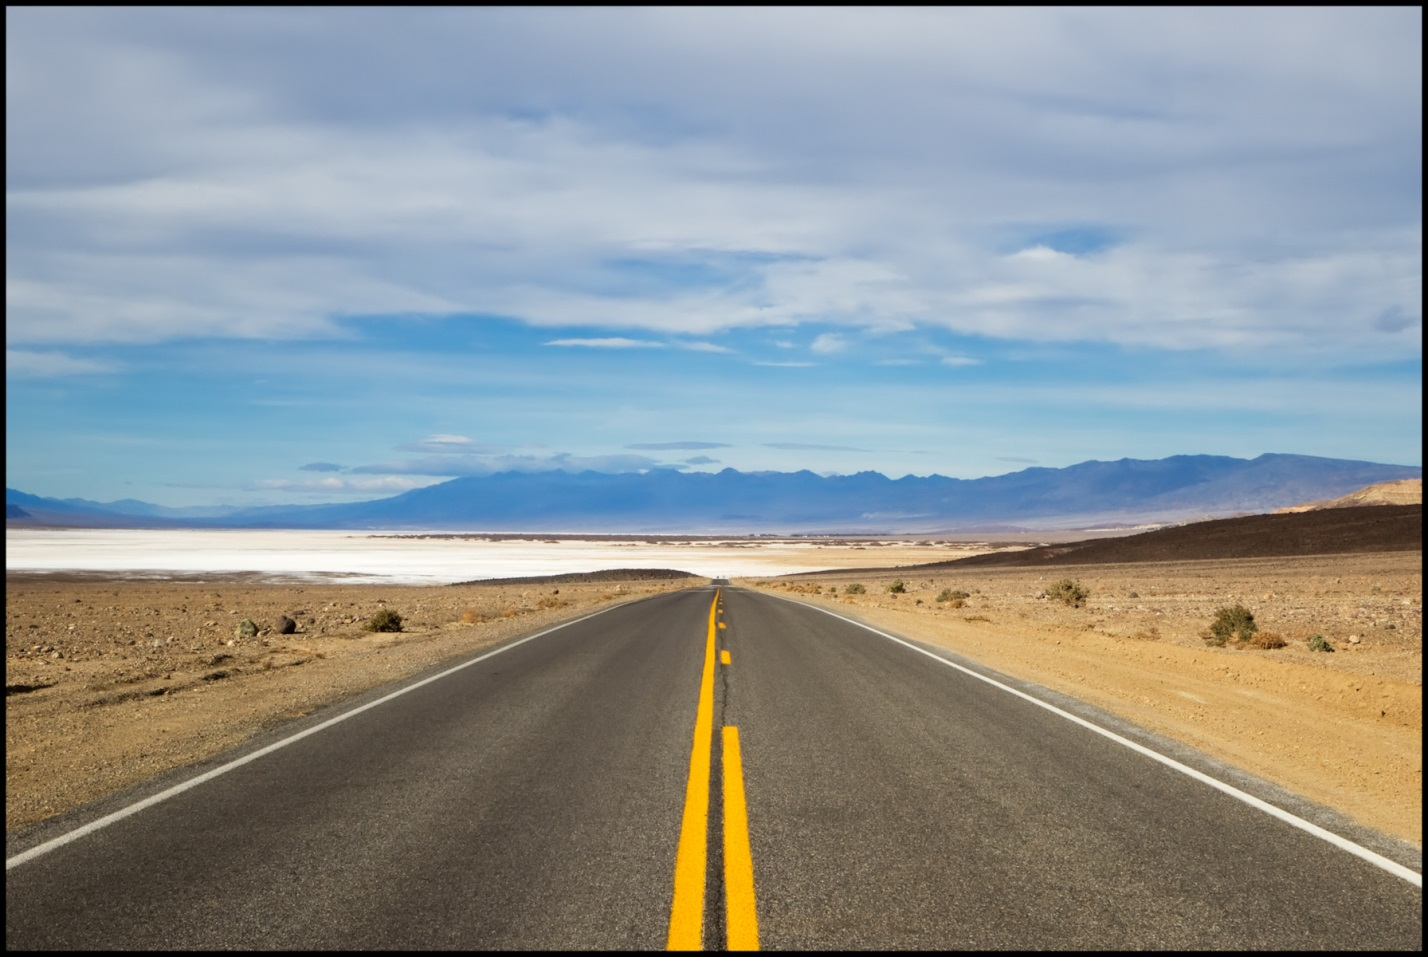 Asphalt roadway near the salt flats of Death Valley National Park in California